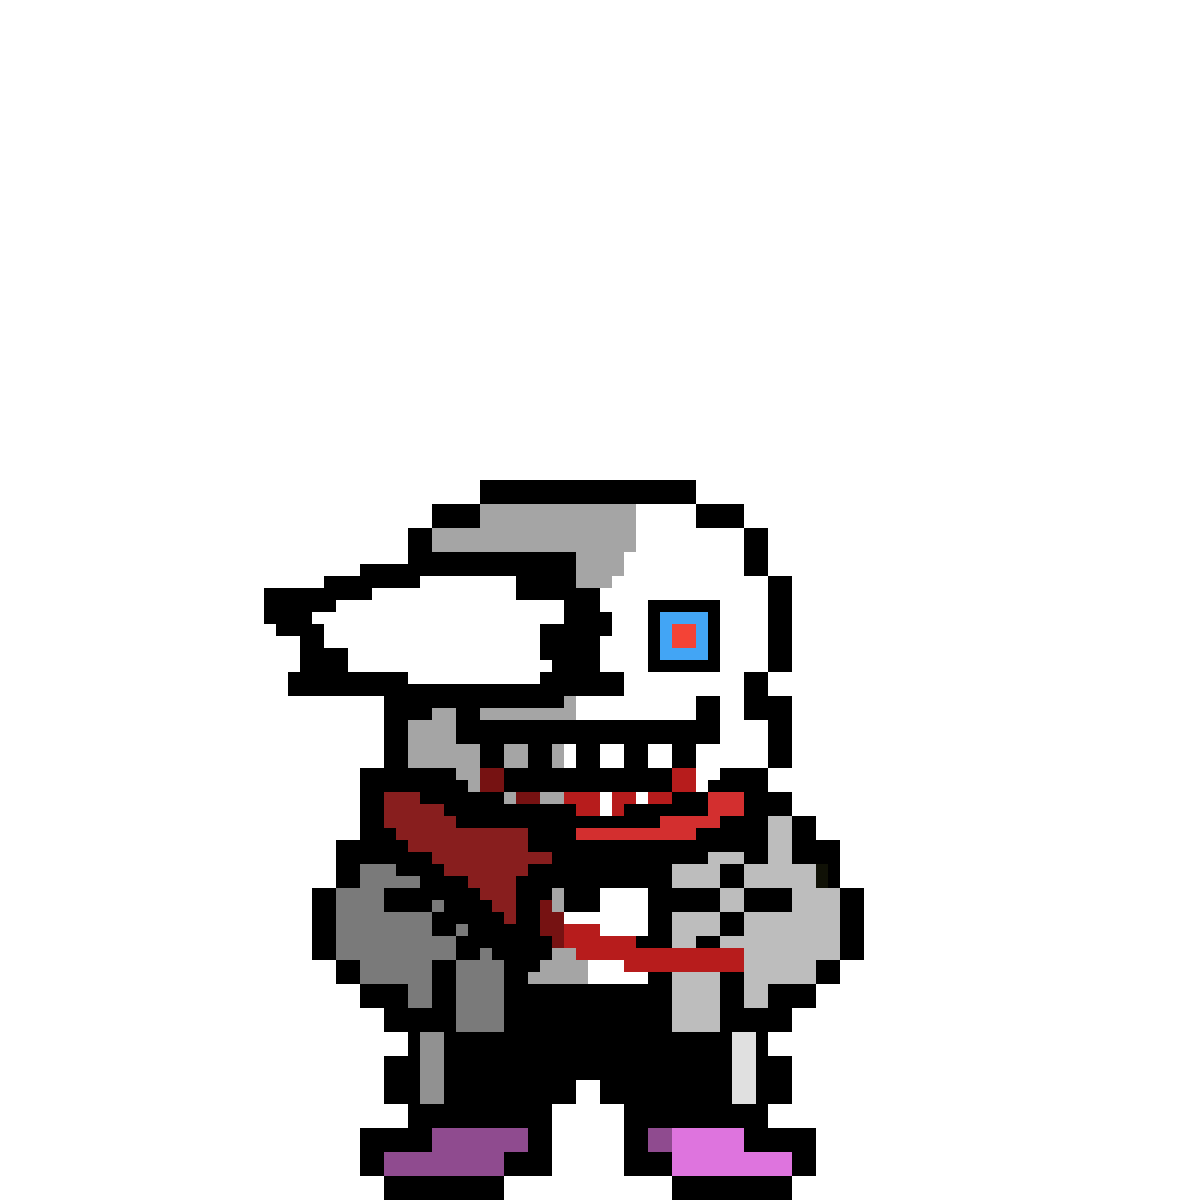 aftertale sans